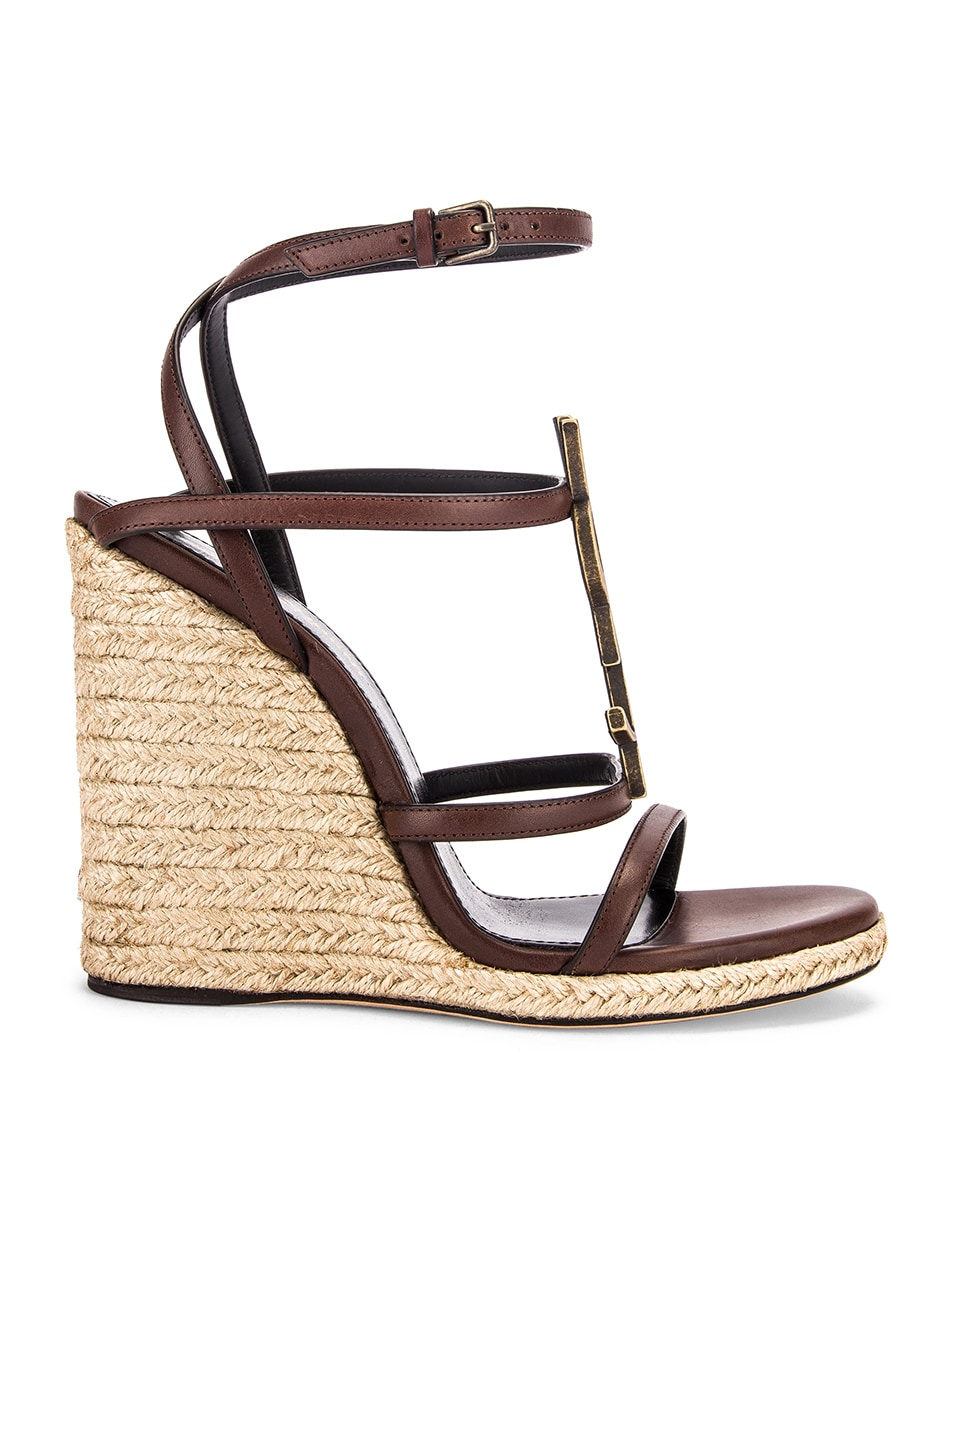 Image 2 of Saint Laurent Espadrille Wedges in Black & Gold